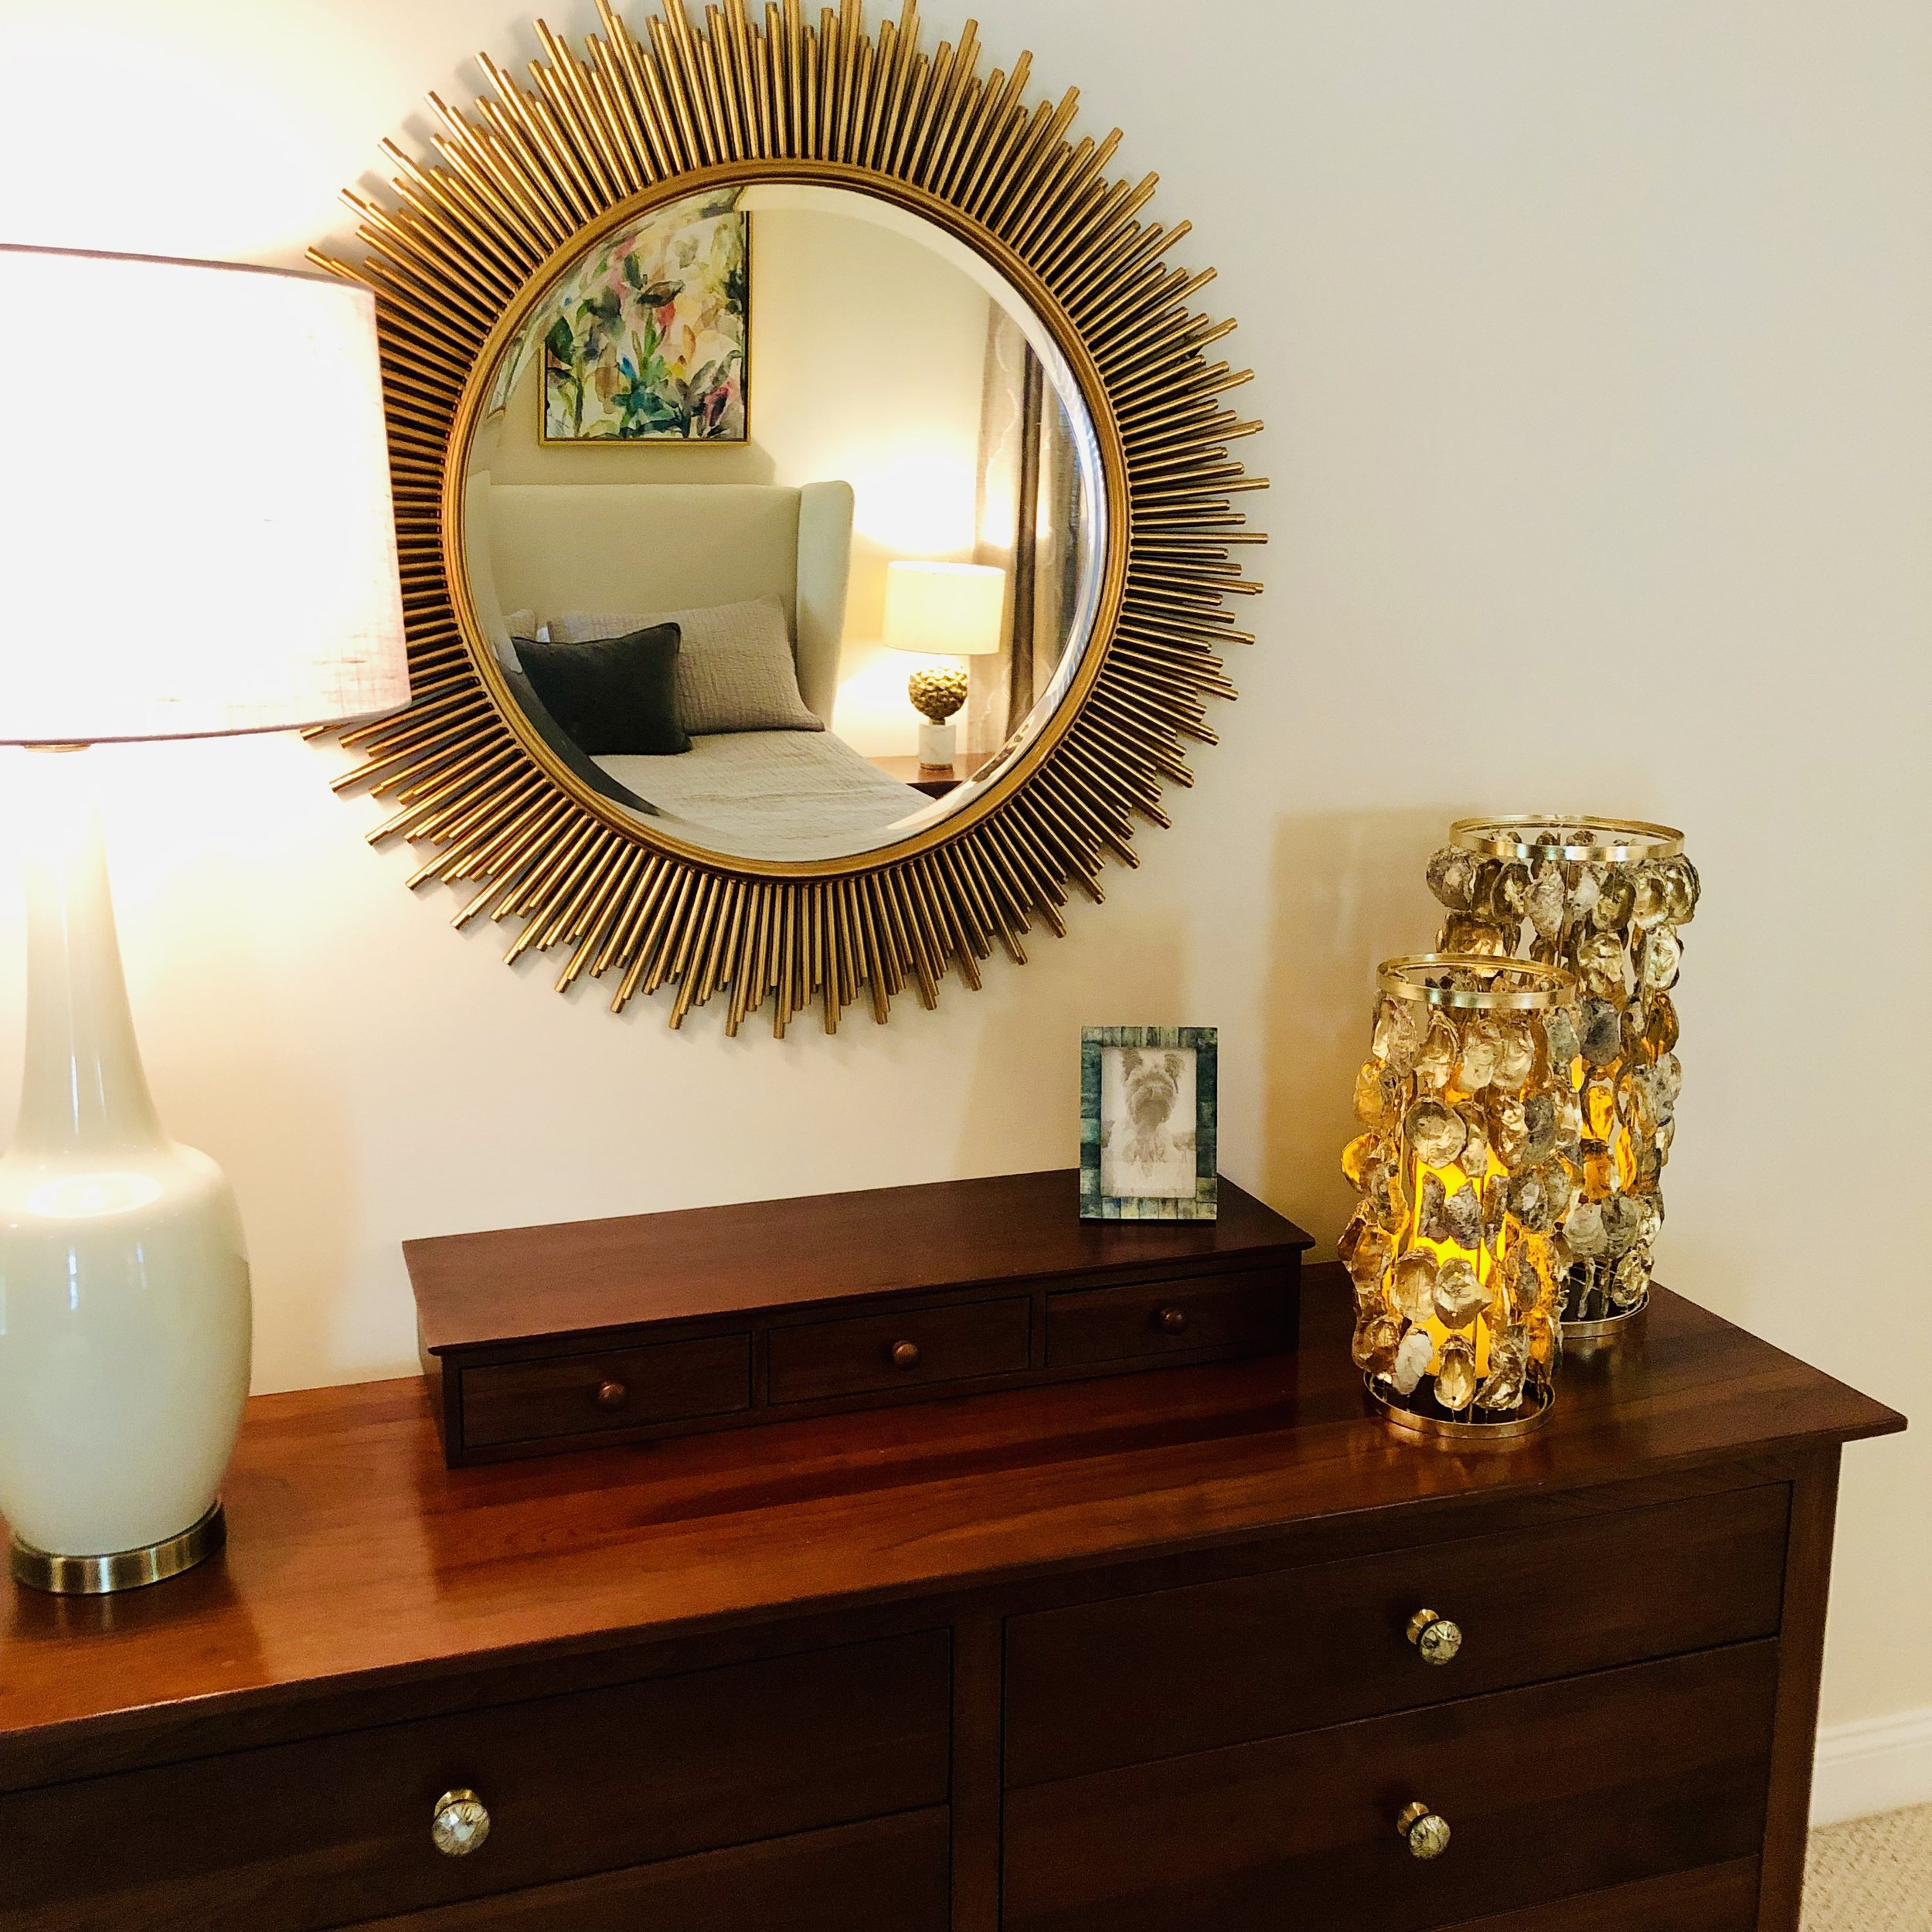 New Dresser Hardware, Mirror, Lamp and Decor